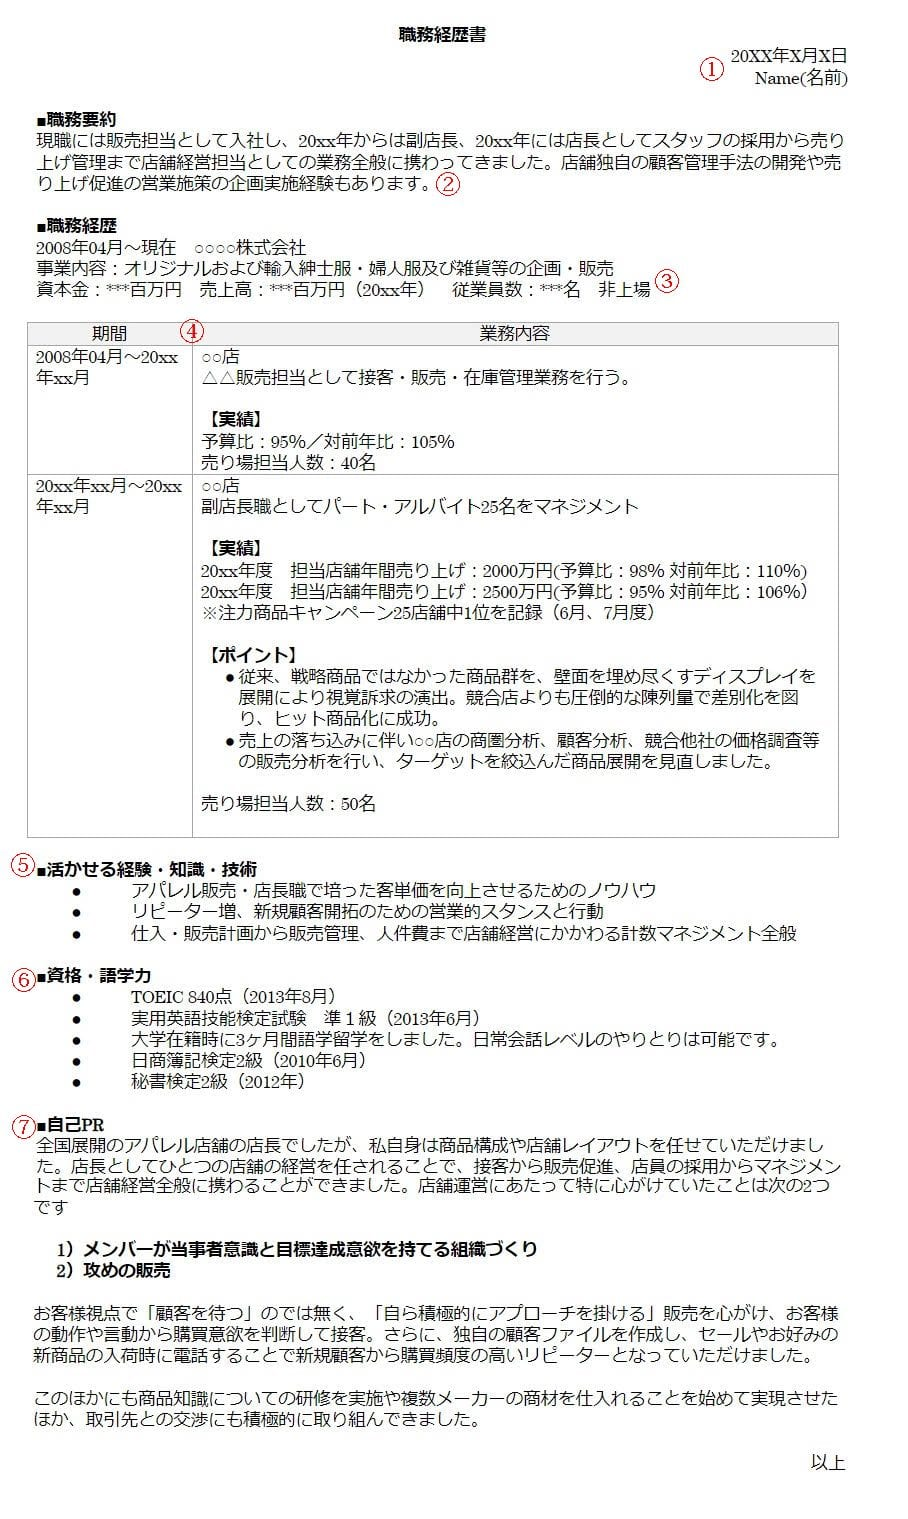 unnamed2 Japanese Resume Format Pdf on example pdf, resume formatting, resume formatts, resume formats for experienced workers, resume creator fill in blank, resume with sap experience, resume templates, resume writing, functional resume pdf, resume action verbs pdf, resume pdf or word, resume form pdf, resume guide pdf, resume outline pdf, email pdf, administrative assistant resume pdf, resume tips, best resume pdf, student resume pdf, resume skills checklist,